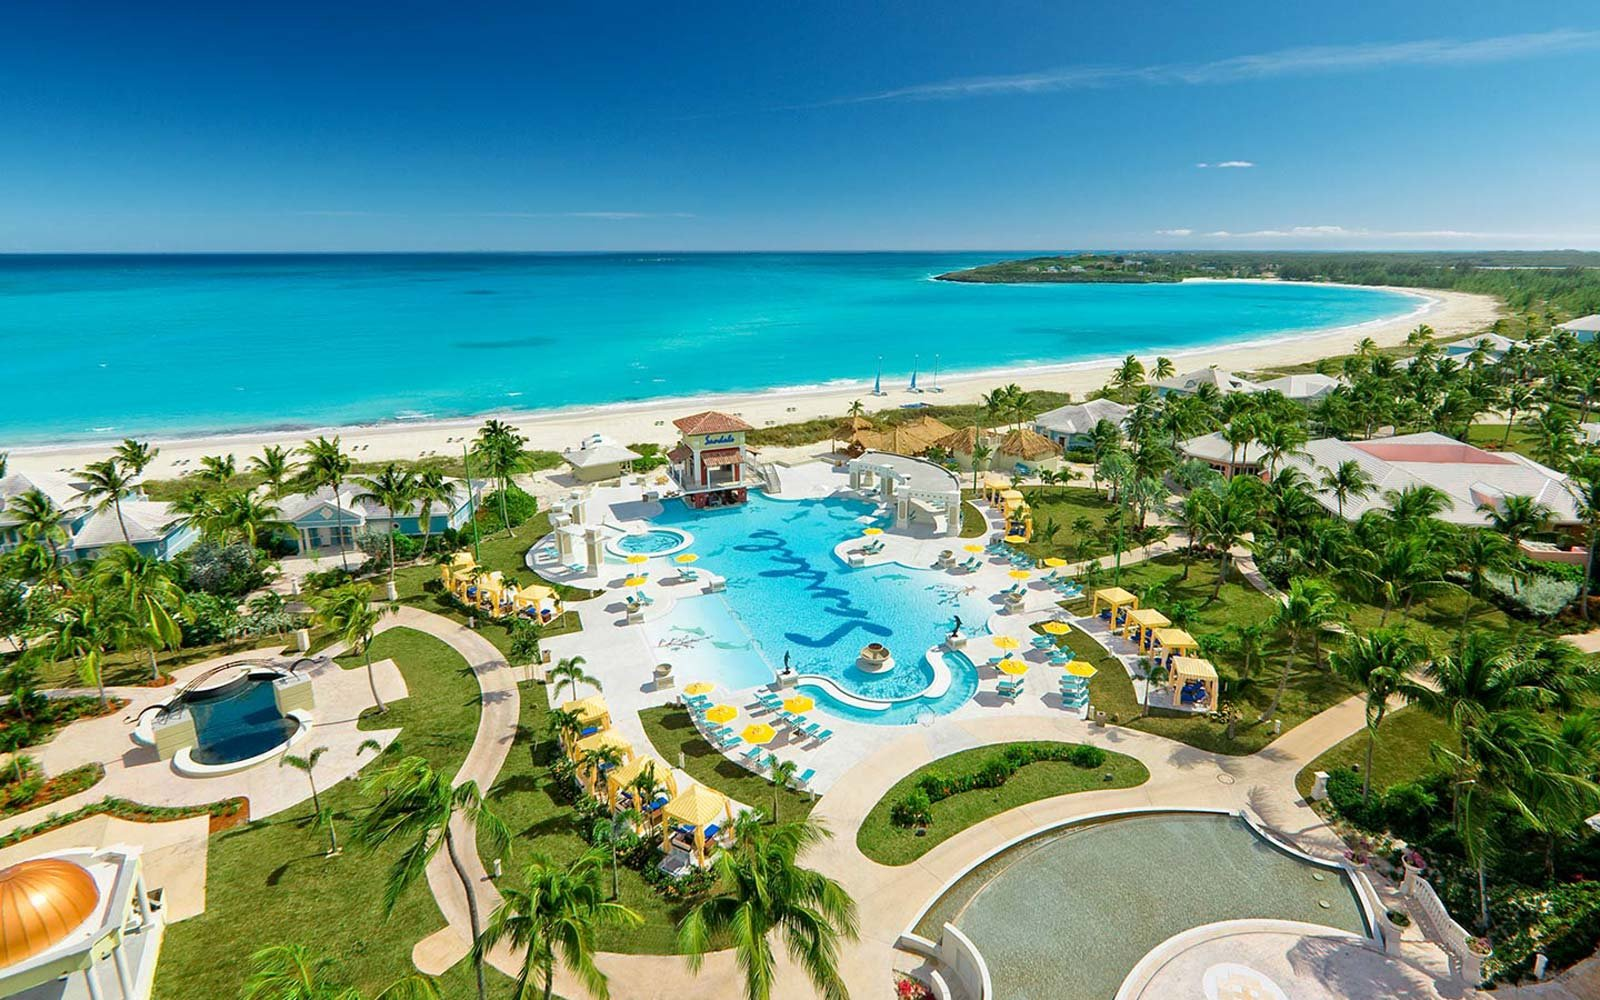 Overview of Sandals Emerald Bay resort in the Bahamas